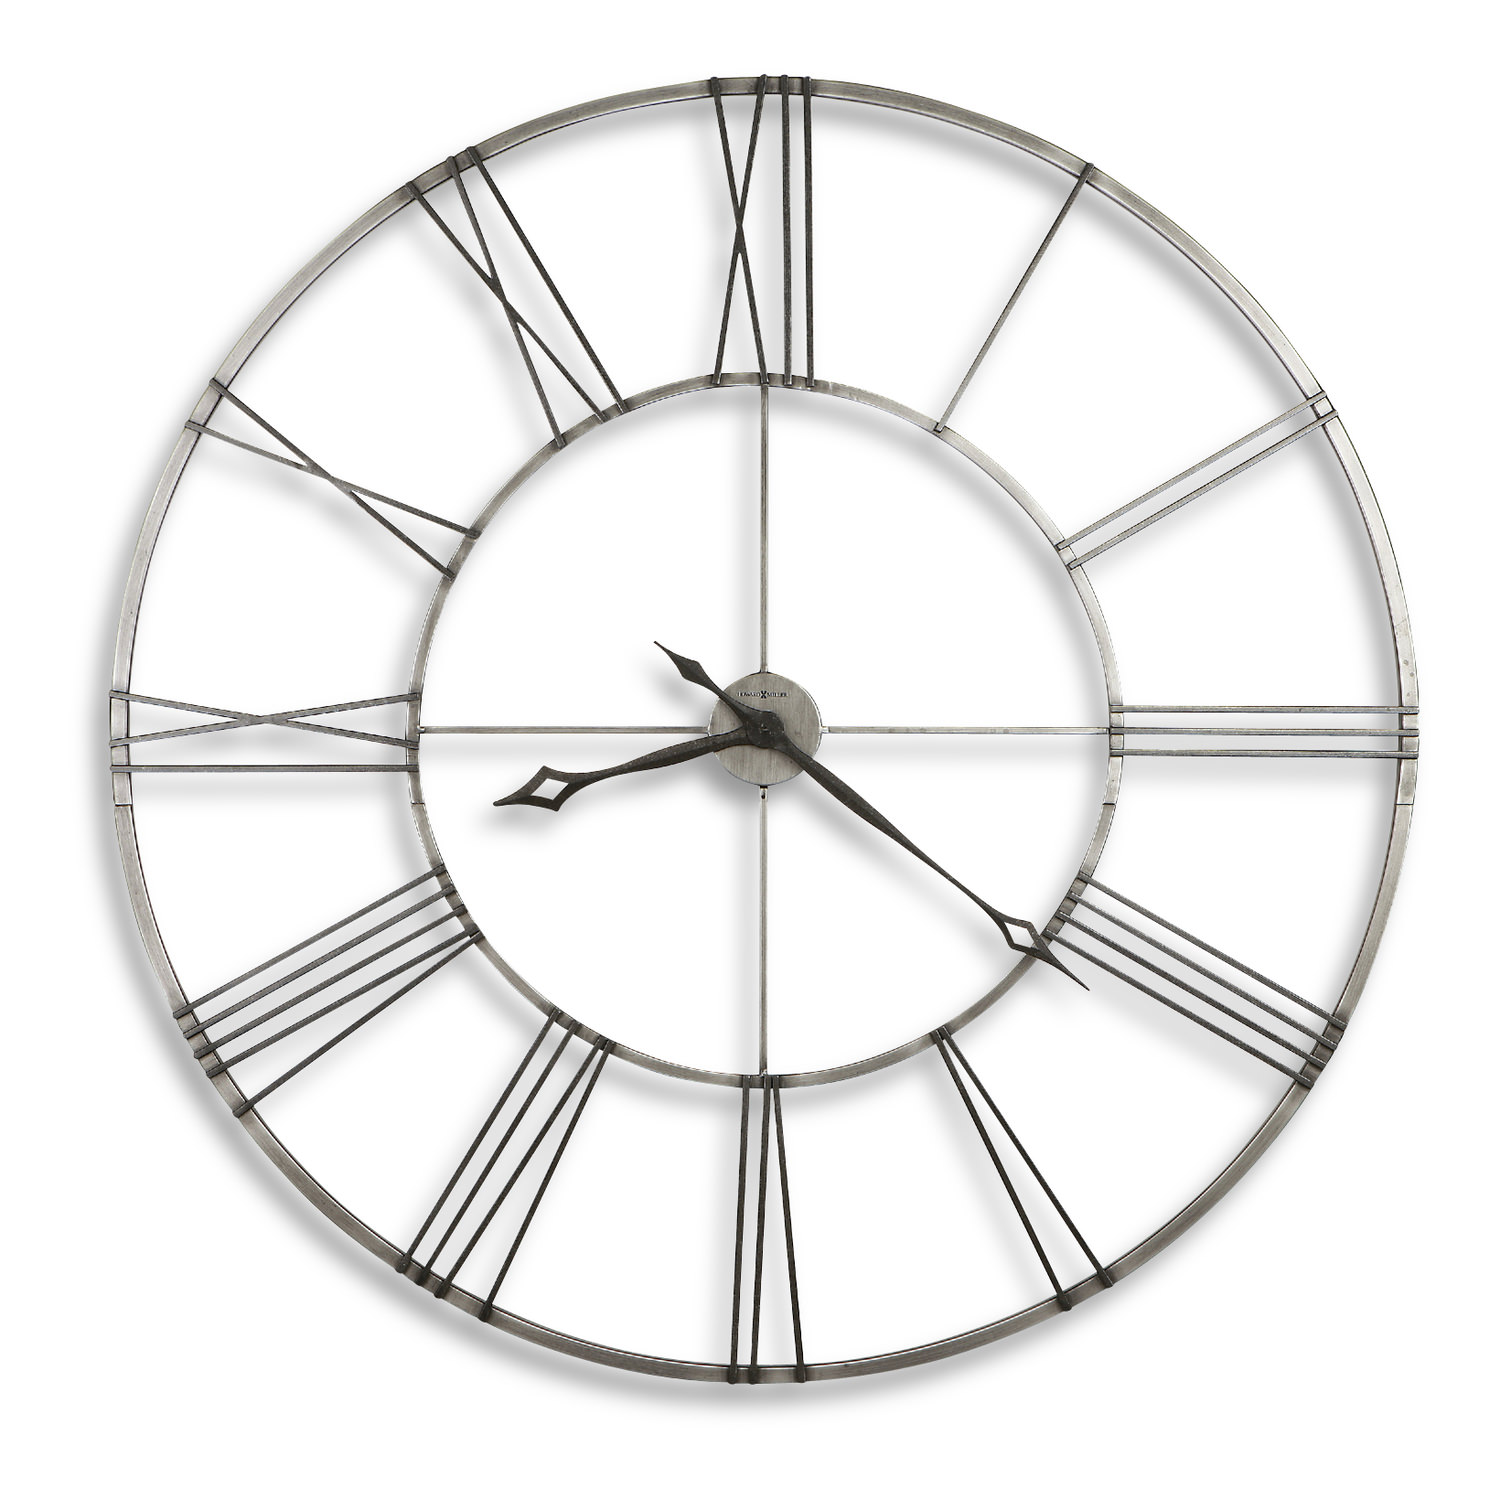 Stockton 49 wall clock by howard miller hom furniture - Large brushed nickel wall clock ...